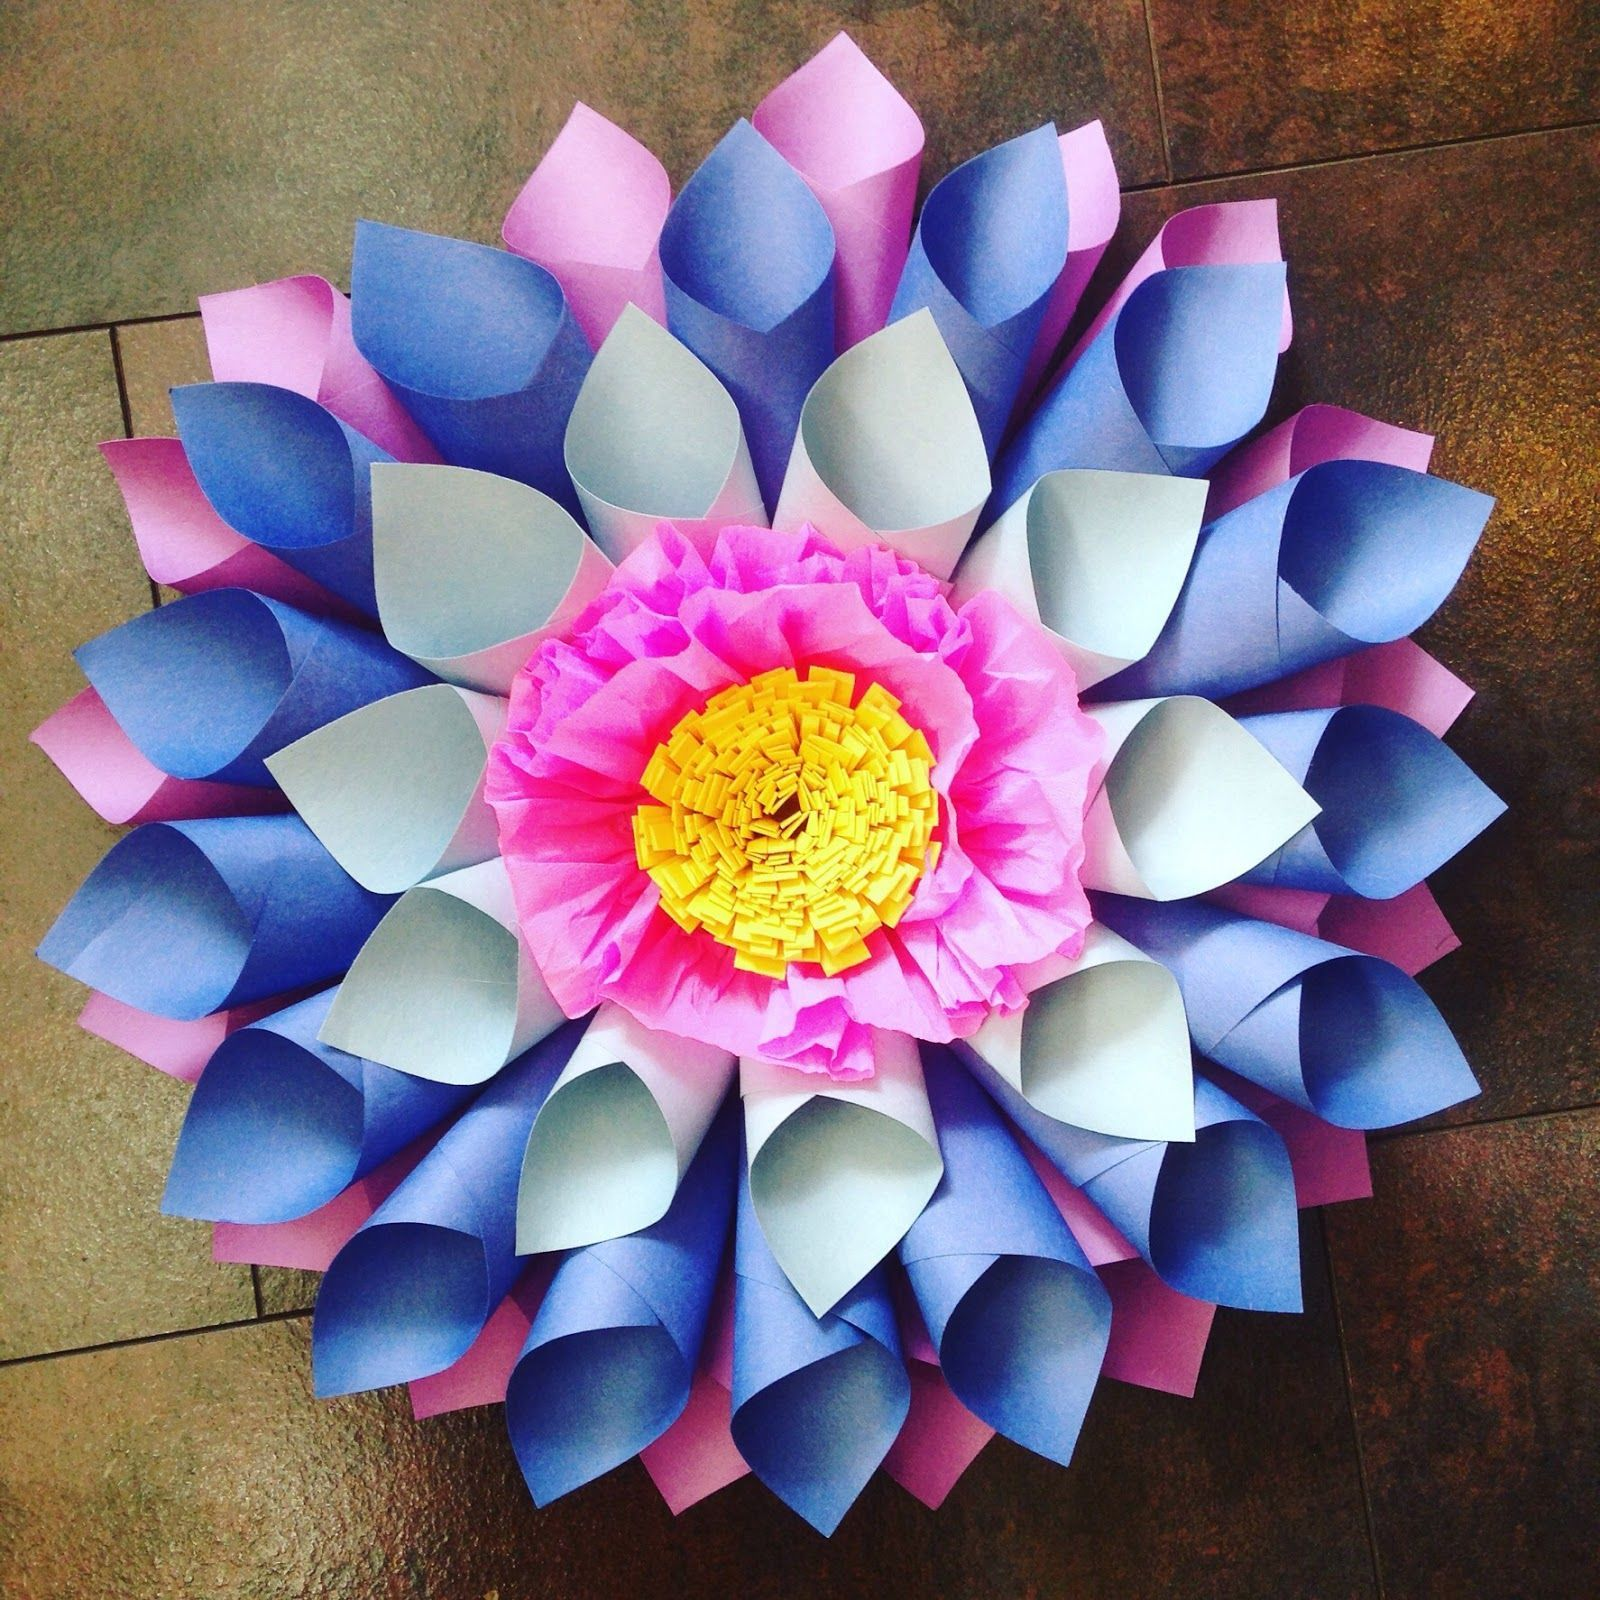 Image result for construction paper flowers #constructionpaperflowers Image result for construction paper flowers #constructionpaperflowers